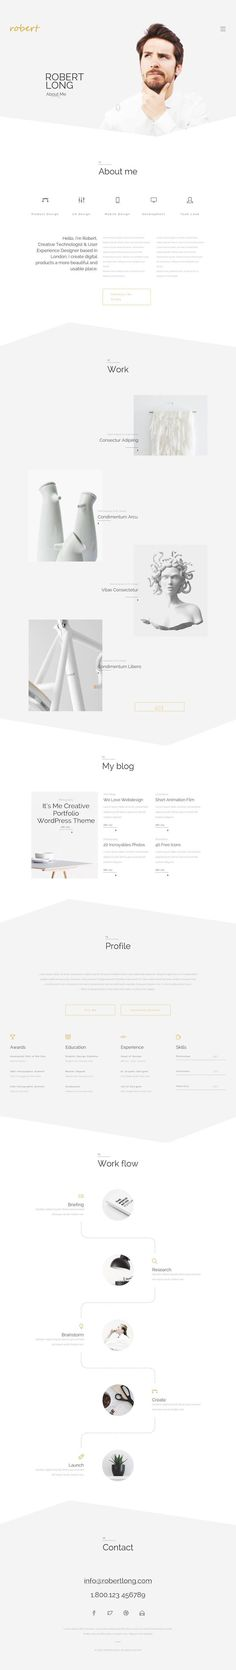 It's Me | Creative personal portfolio website design